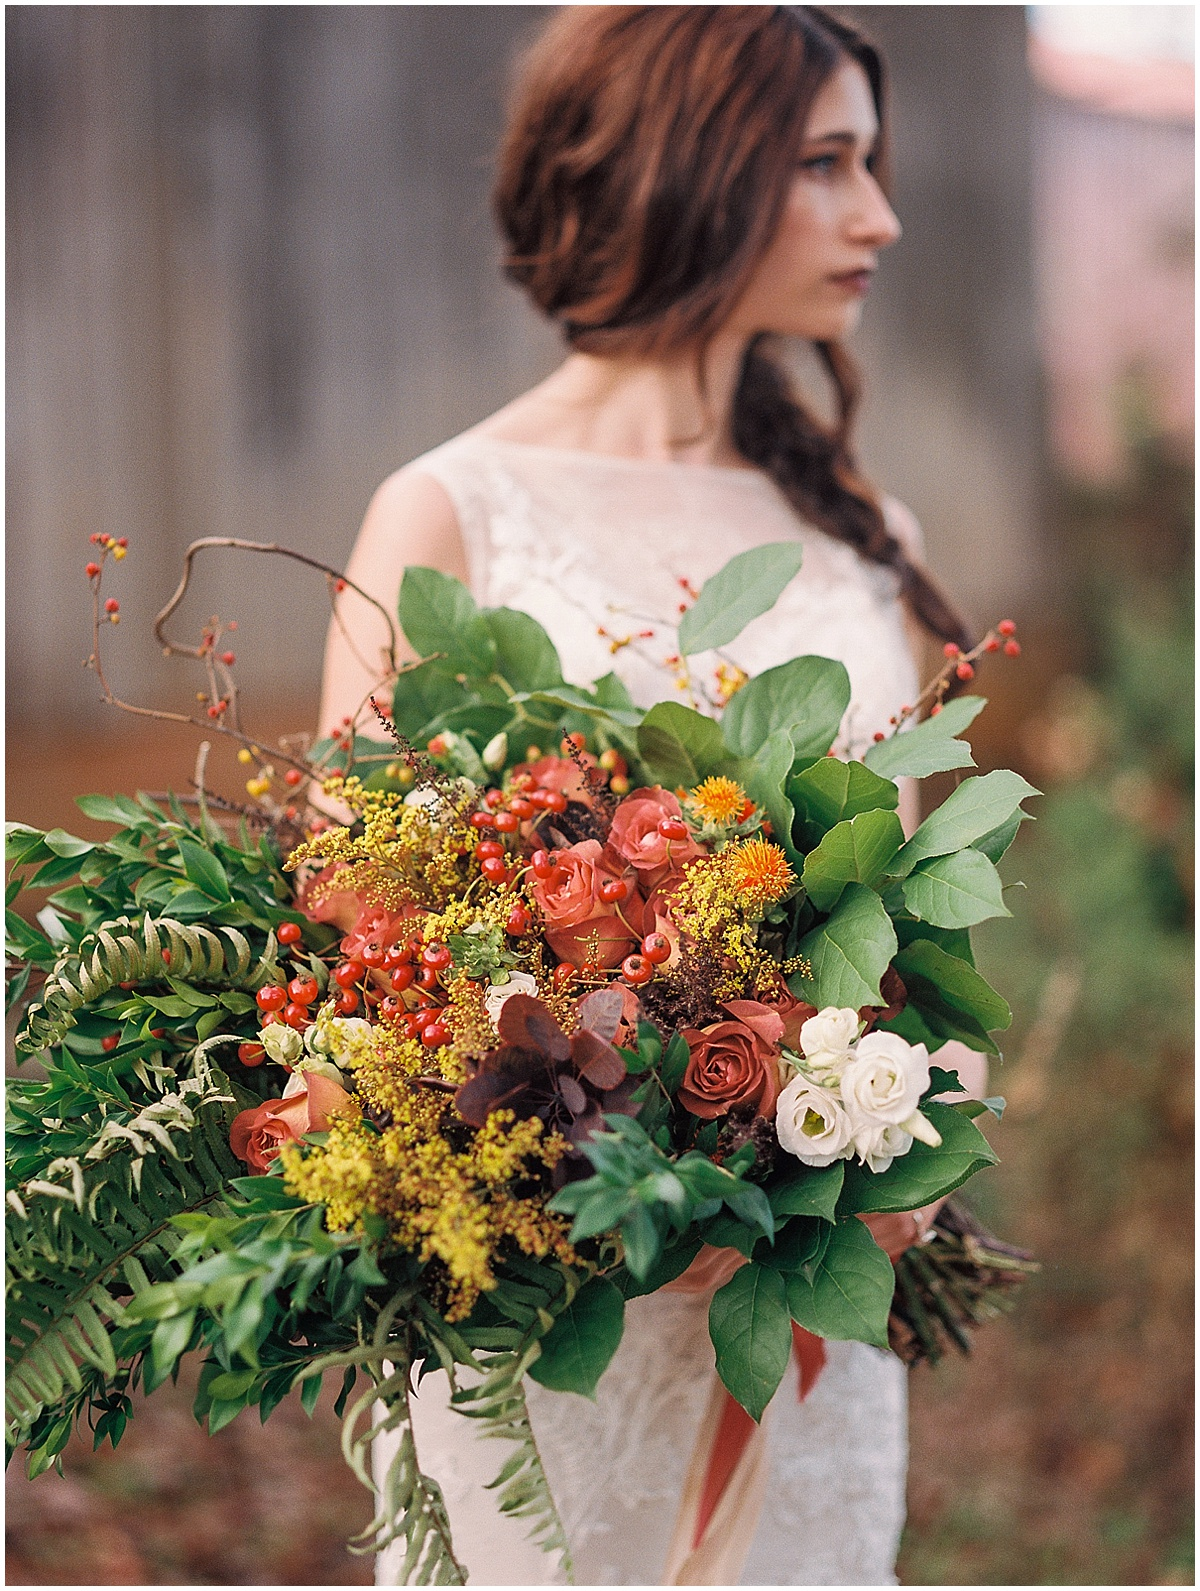 Abigail_Malone_Fall_Wedding_Knoxville_Film_Portra_400_Kodak_Mountain_Views_Abby_Elizabeth-45.jpg